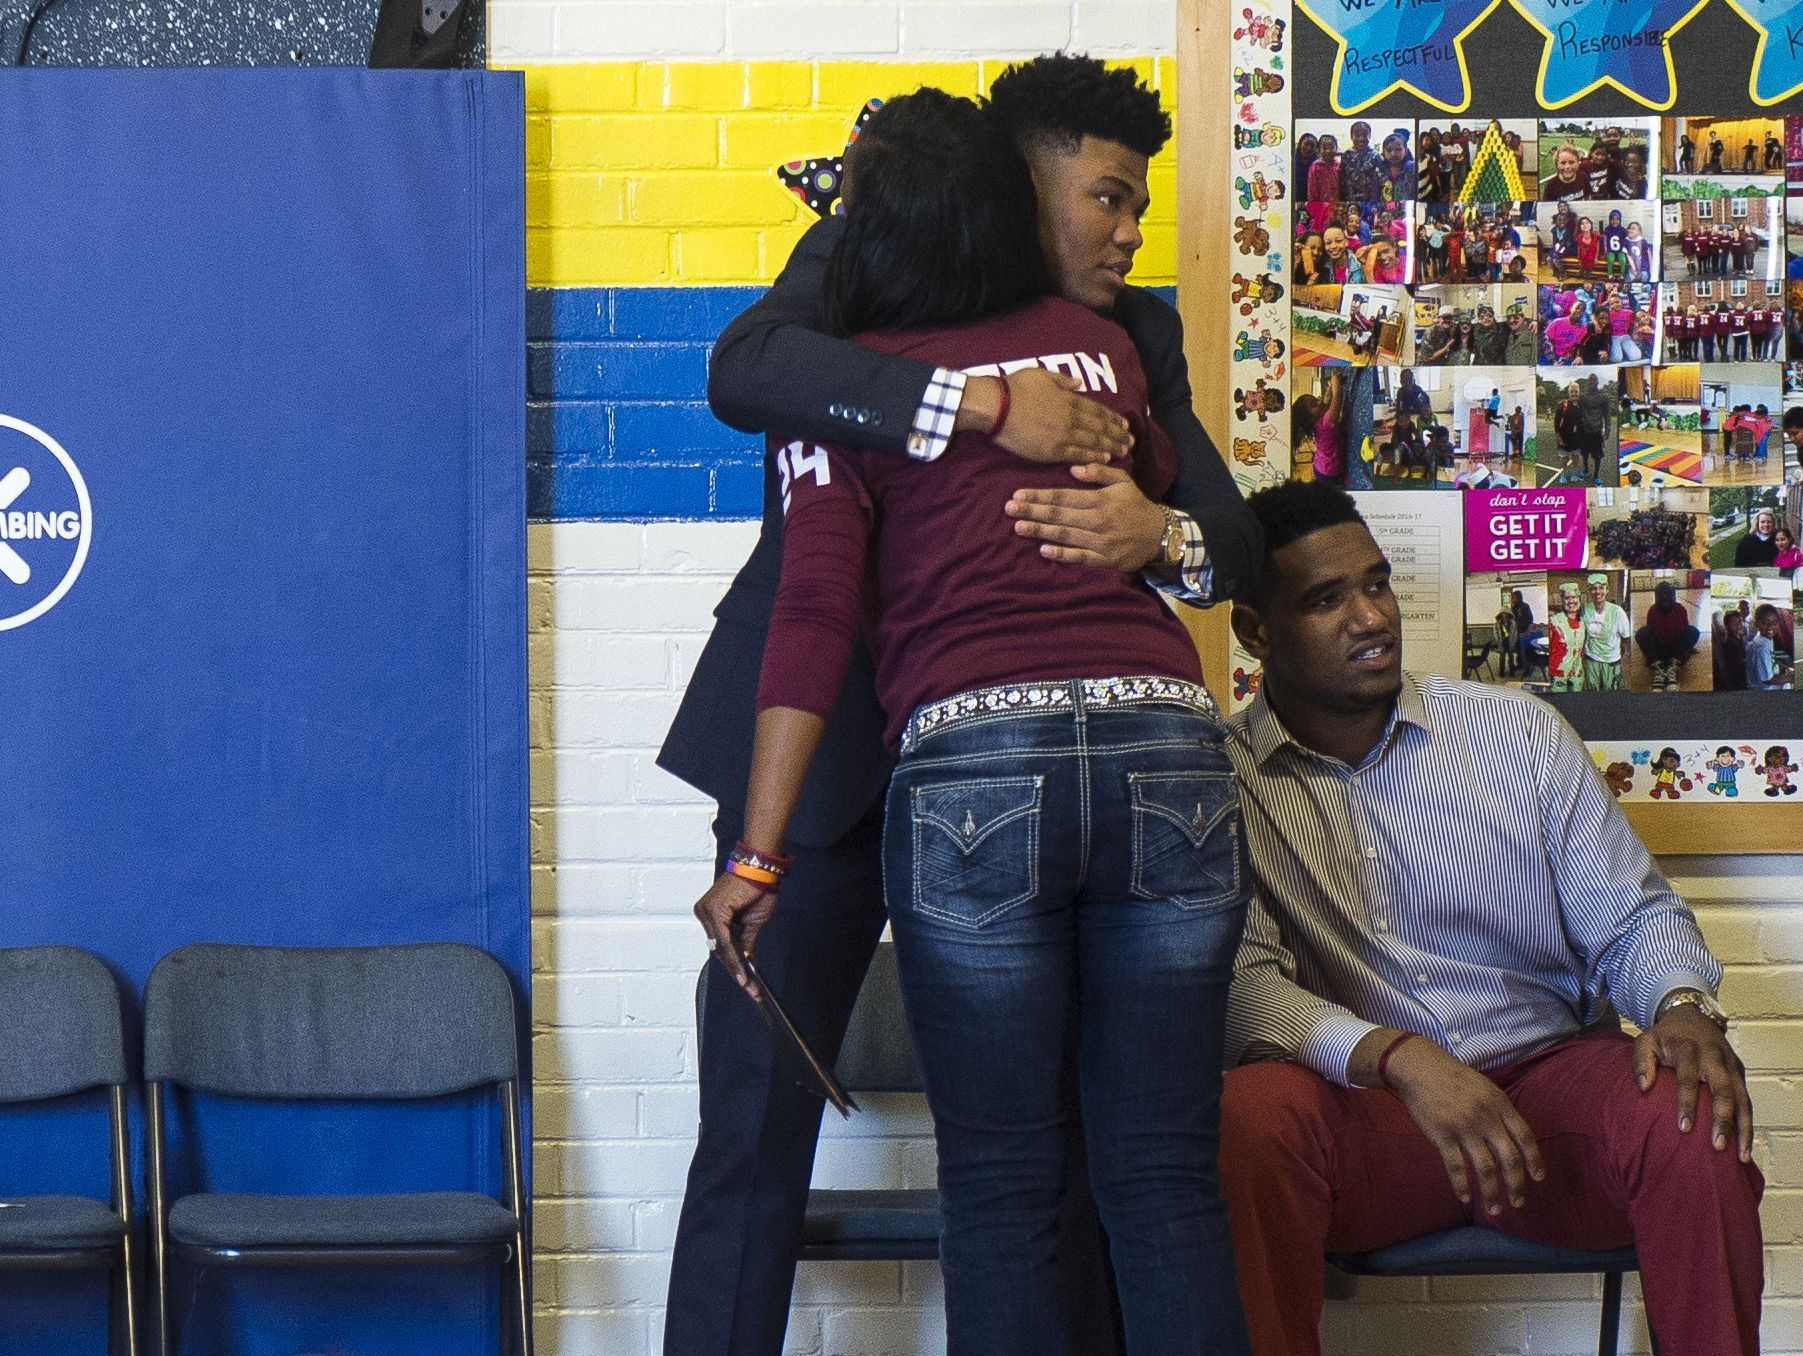 Zenobia Dobson, mother of Zaevion Dobson, receives a hug from Tennessee football player Todd Kelly, Jr. during the inaugural 'Zae Day' program held at Lonsdale Elementary on Tuesday.